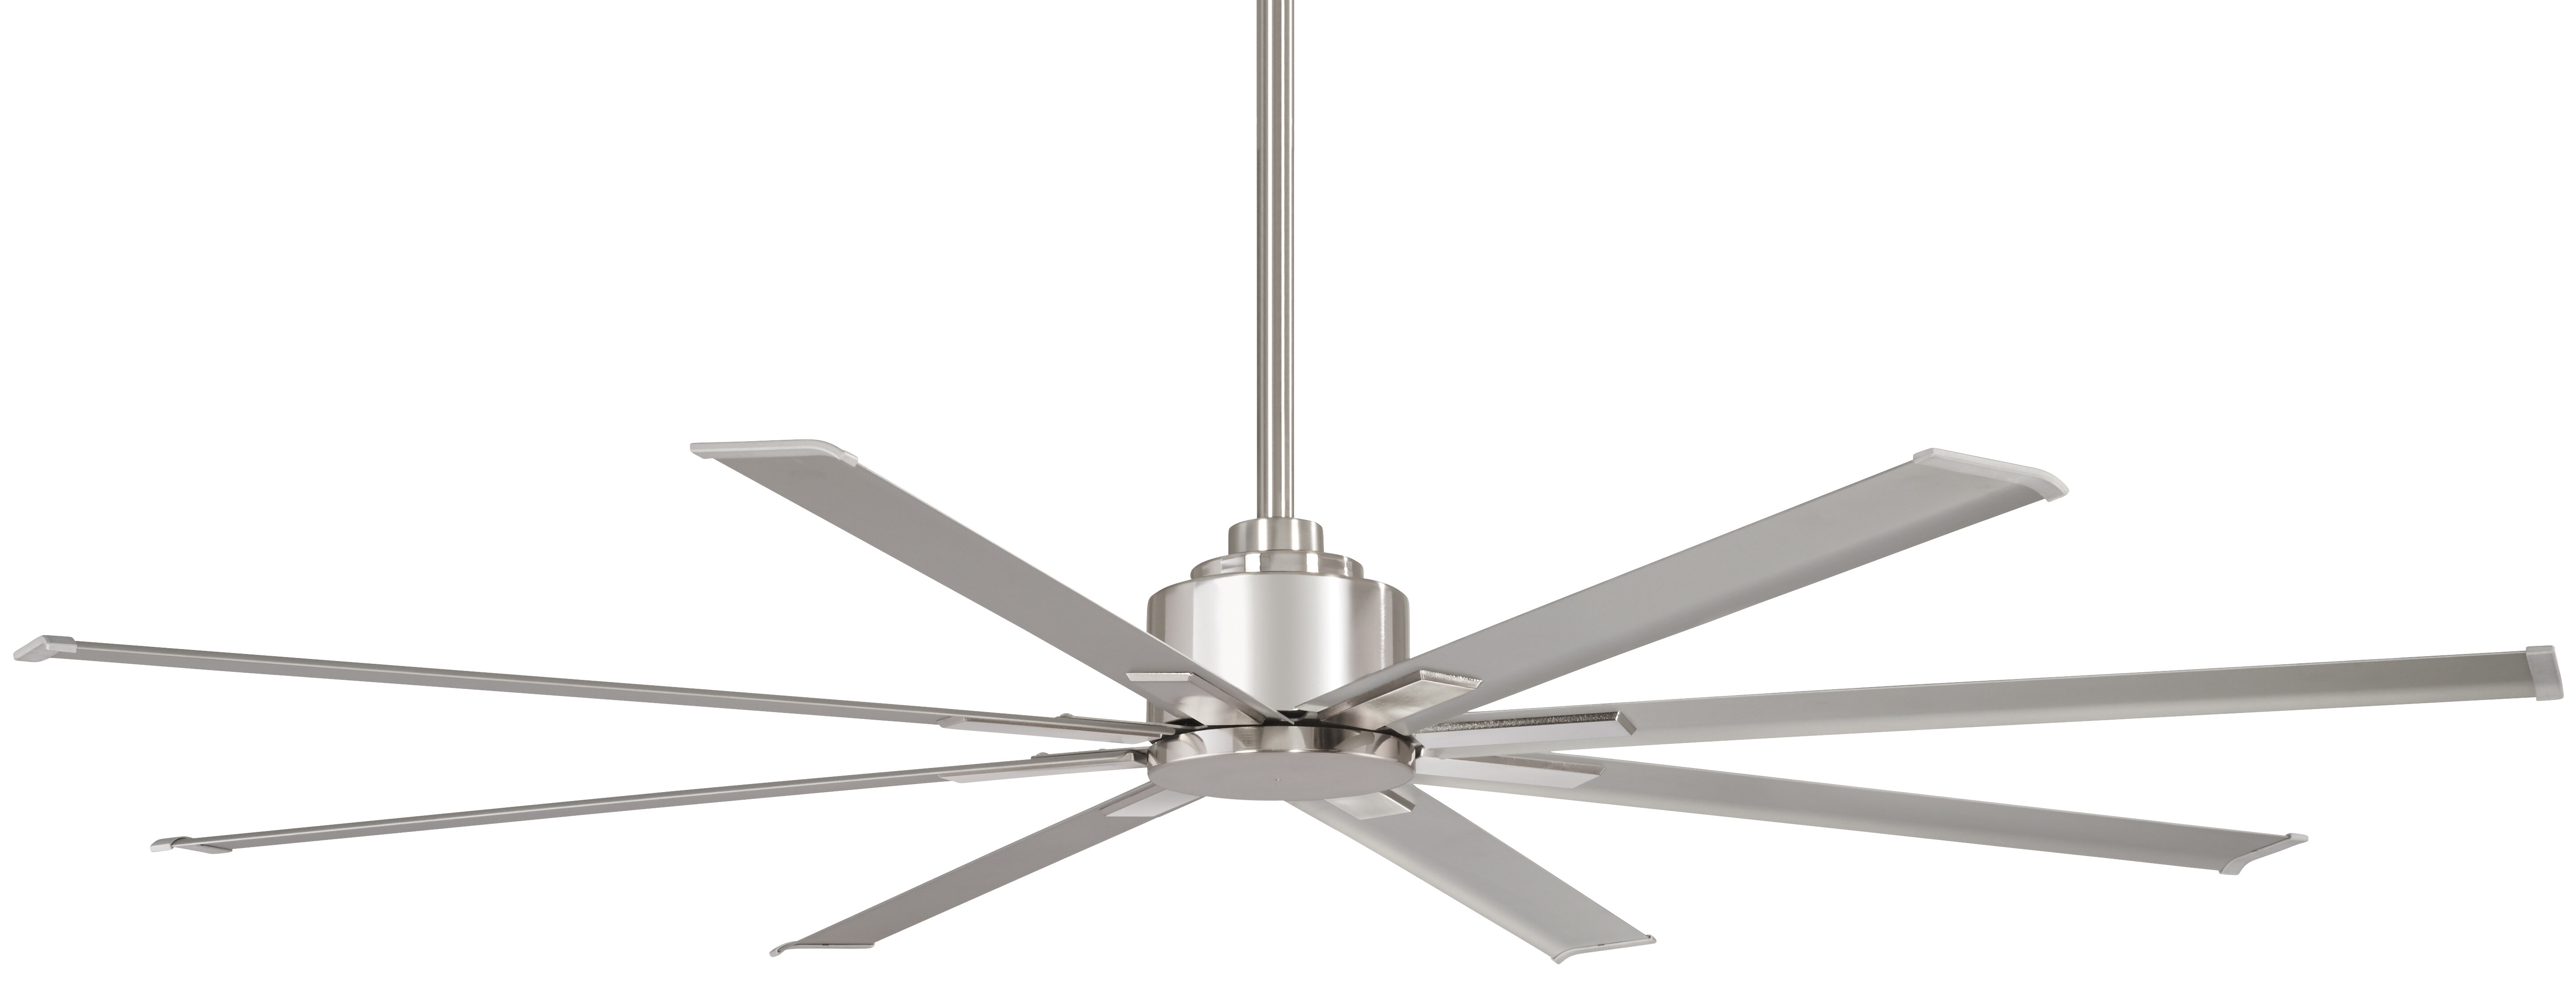 """Minka Aire 65"""" Xtreme 8 Blade Outdoor Ceiling Fan with Remote"""